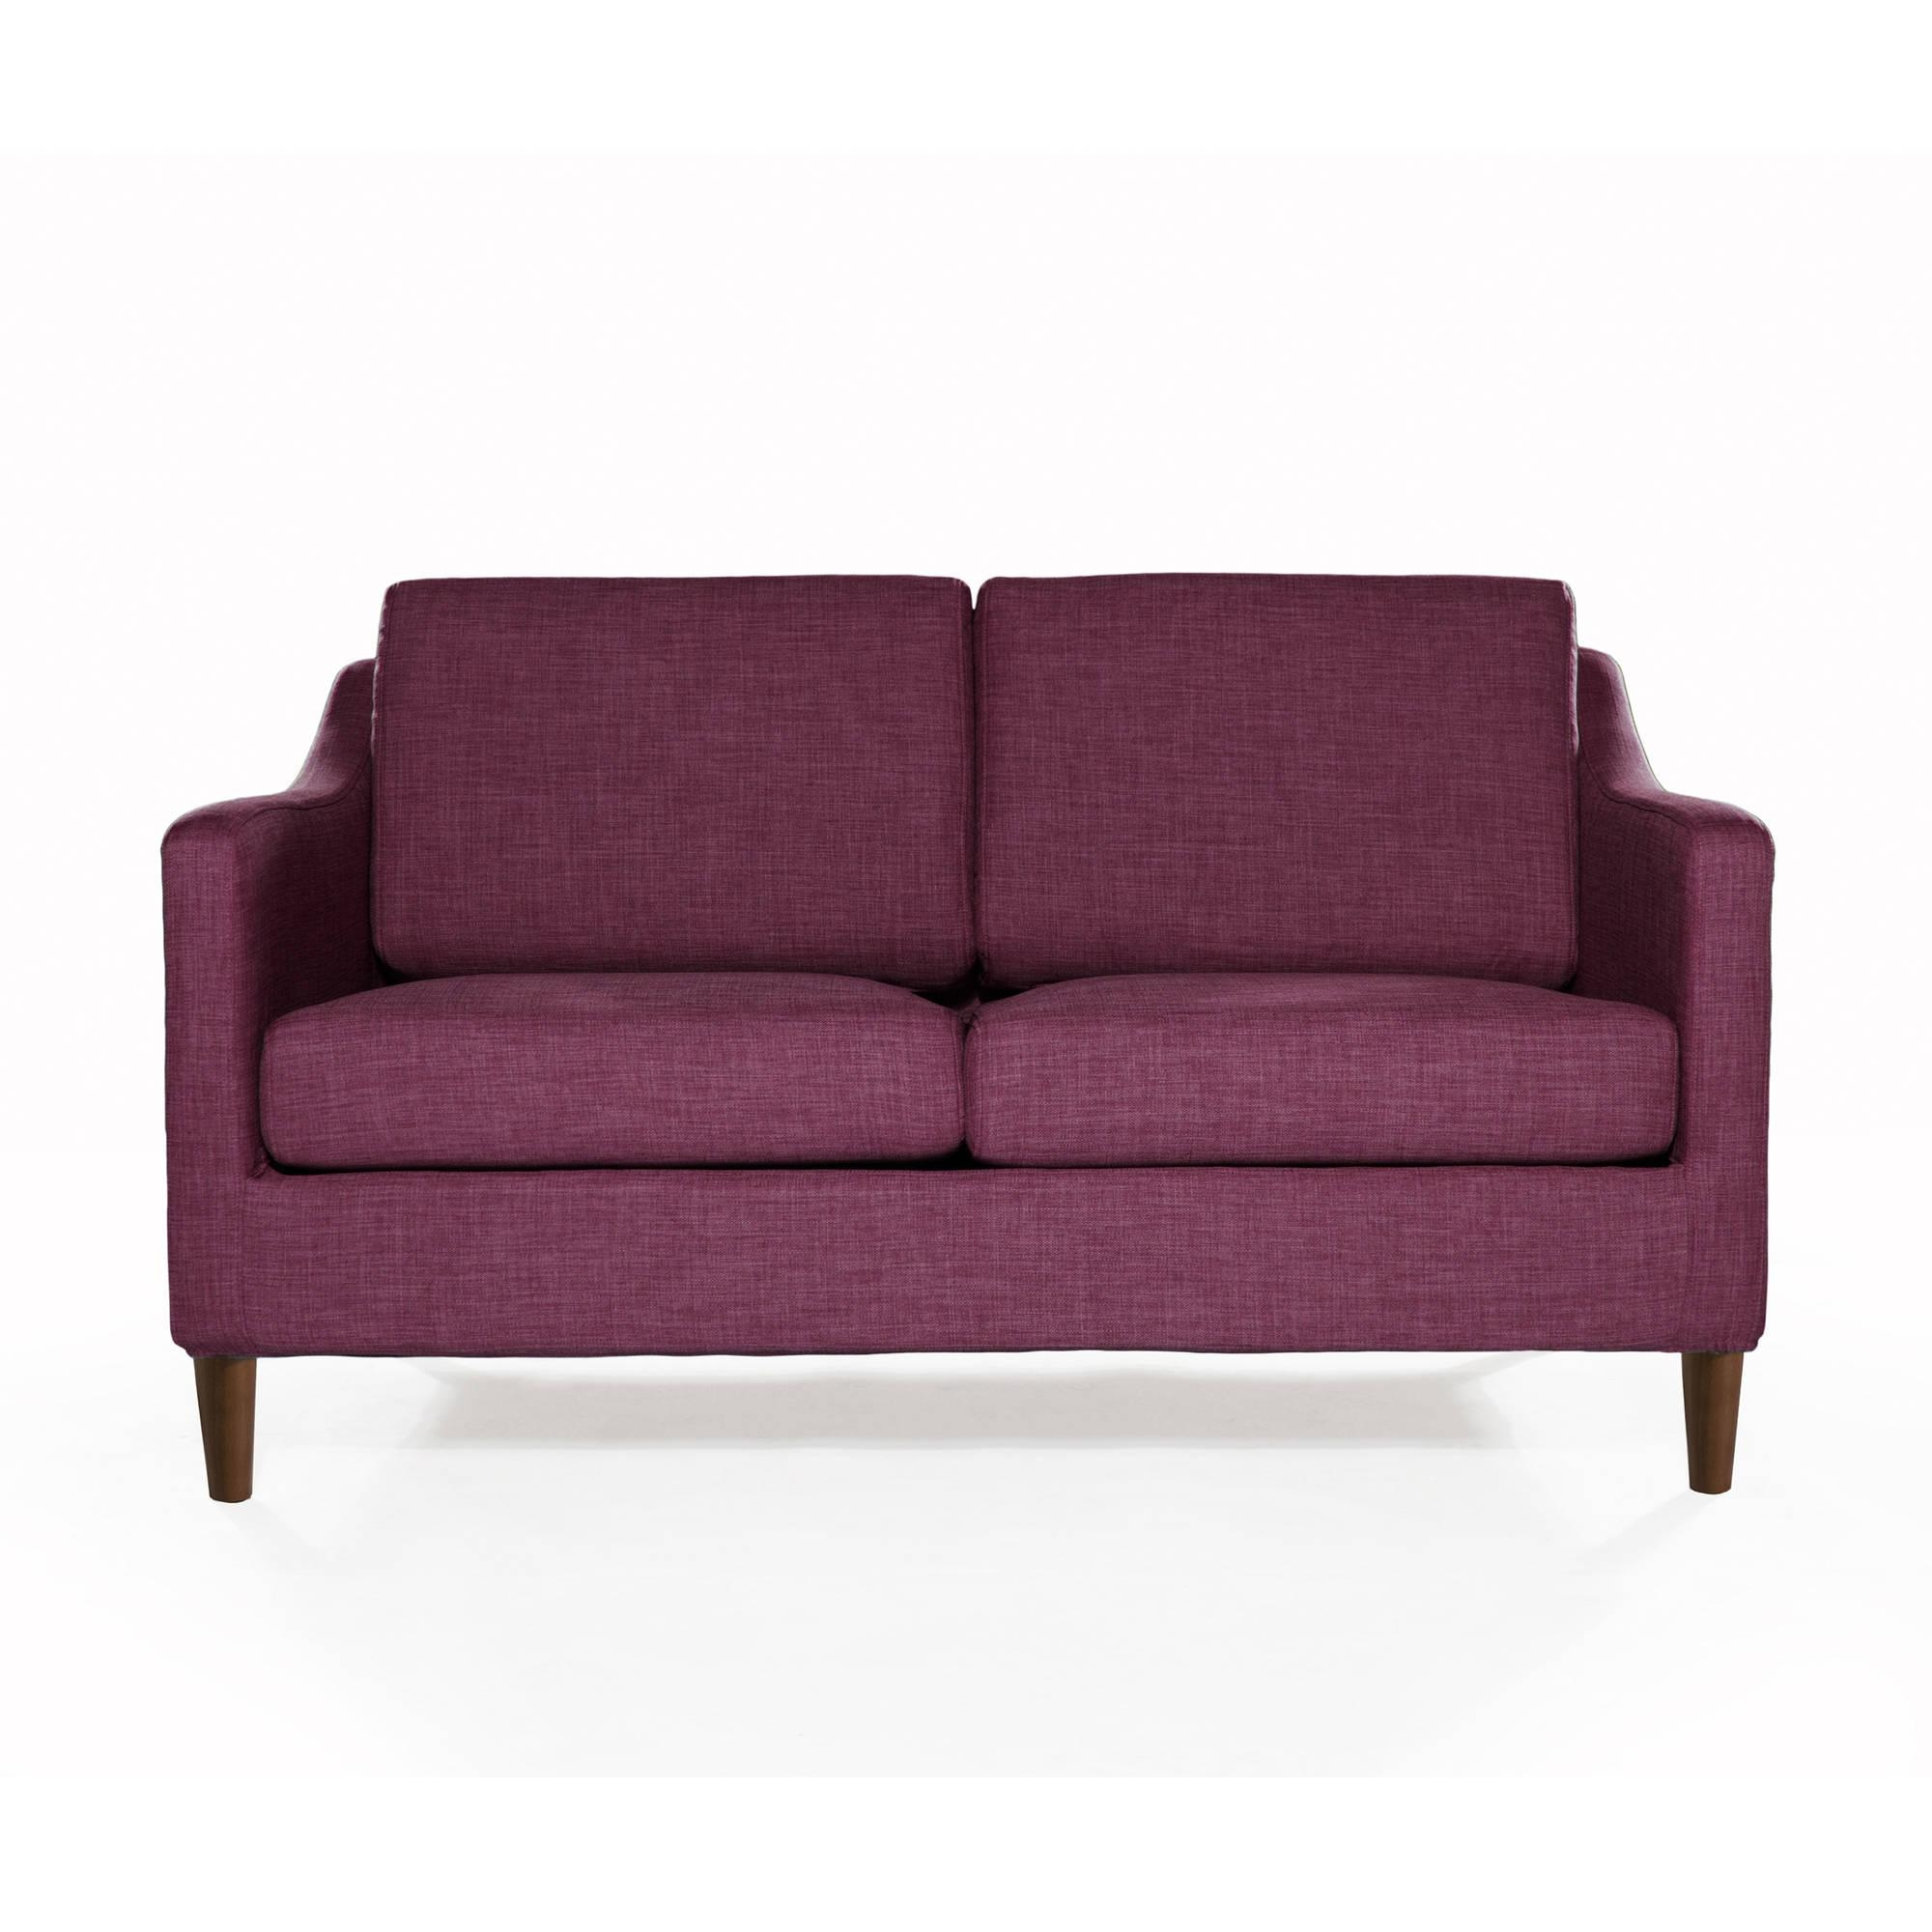 Sofas & Couches – Walmart Within Sofas And Loveseats (Image 10 of 20)